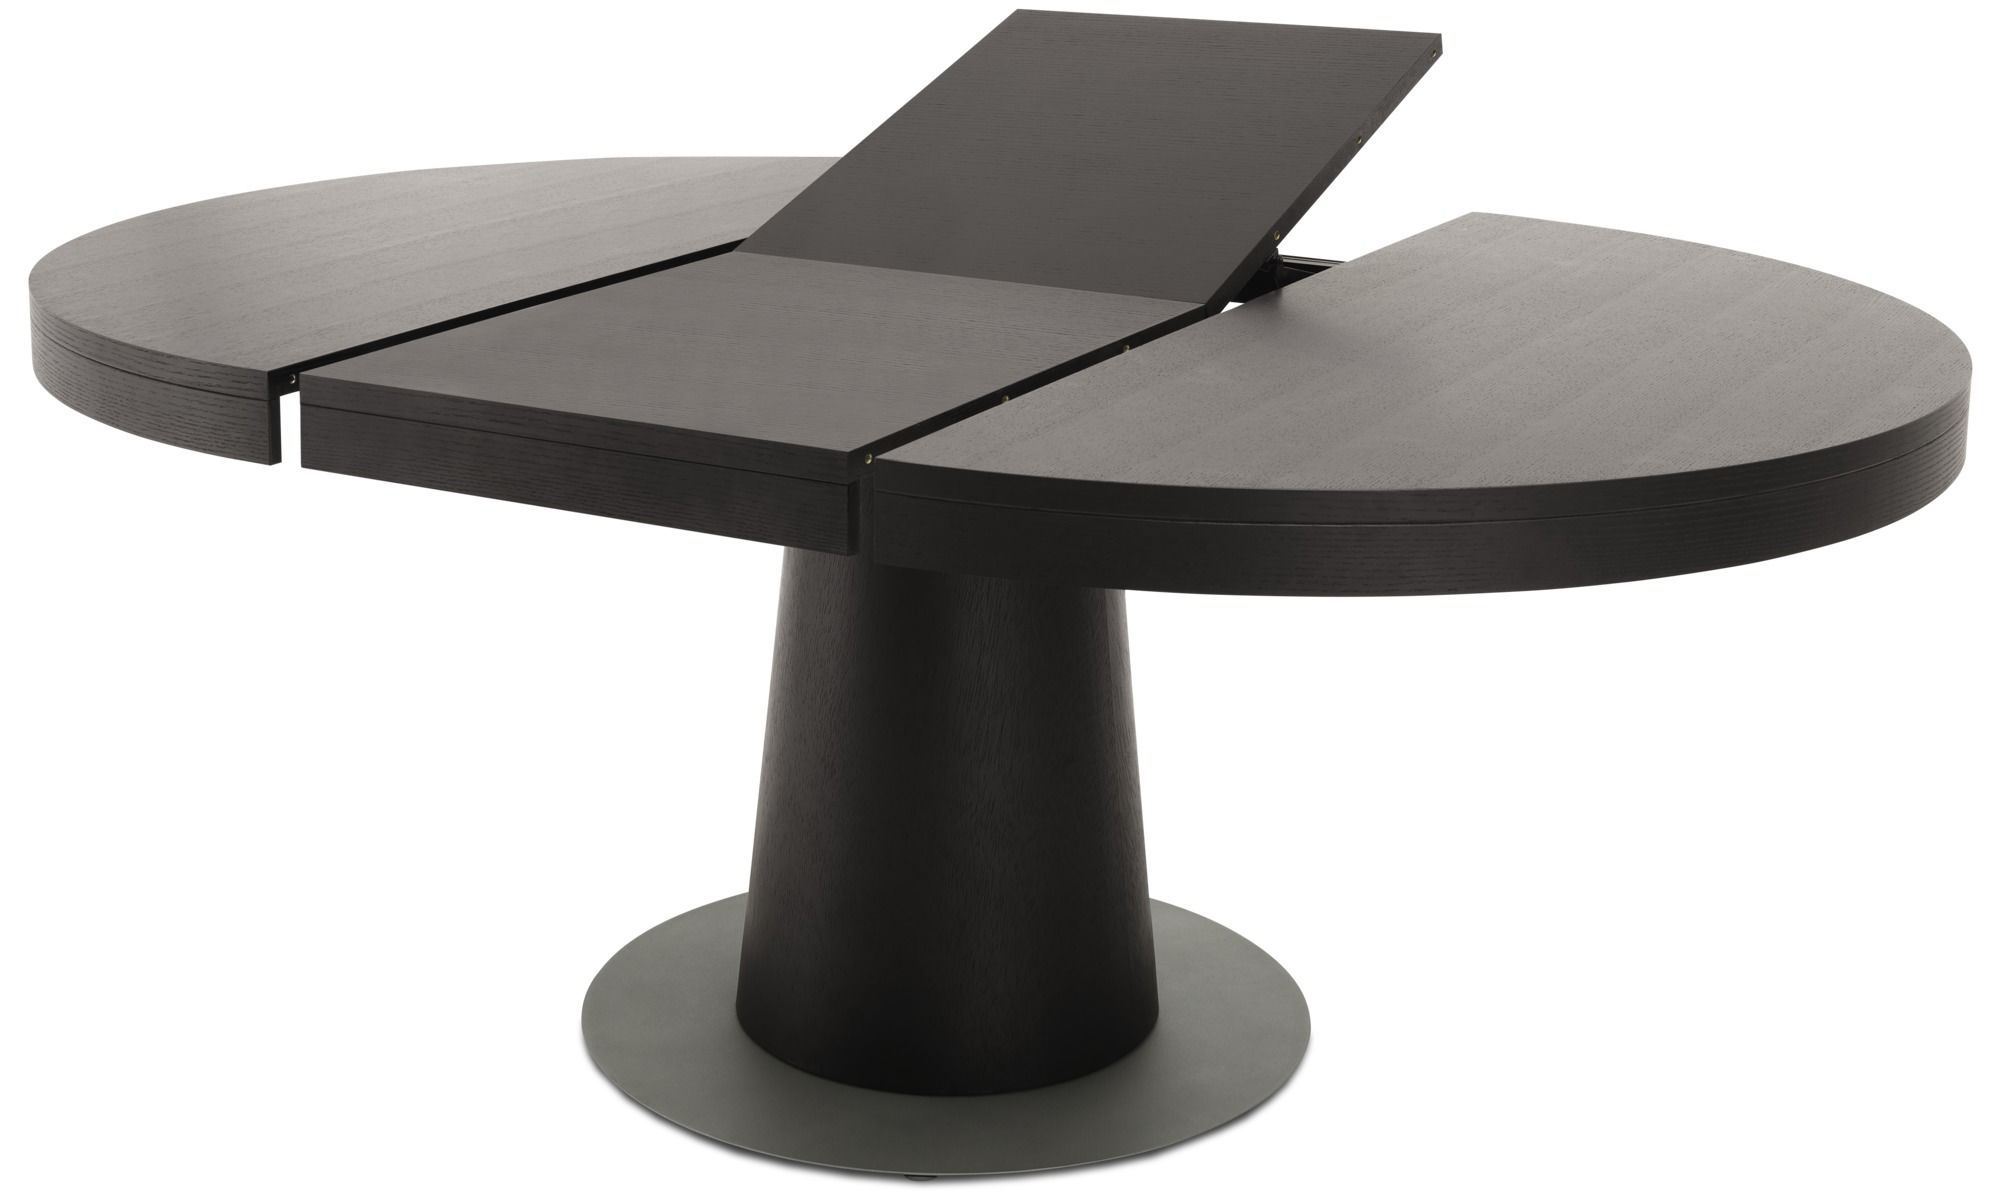 Fine Dining Tables Granada Table With Supplementary Tabletop Ocoug Best Dining Table And Chair Ideas Images Ocougorg